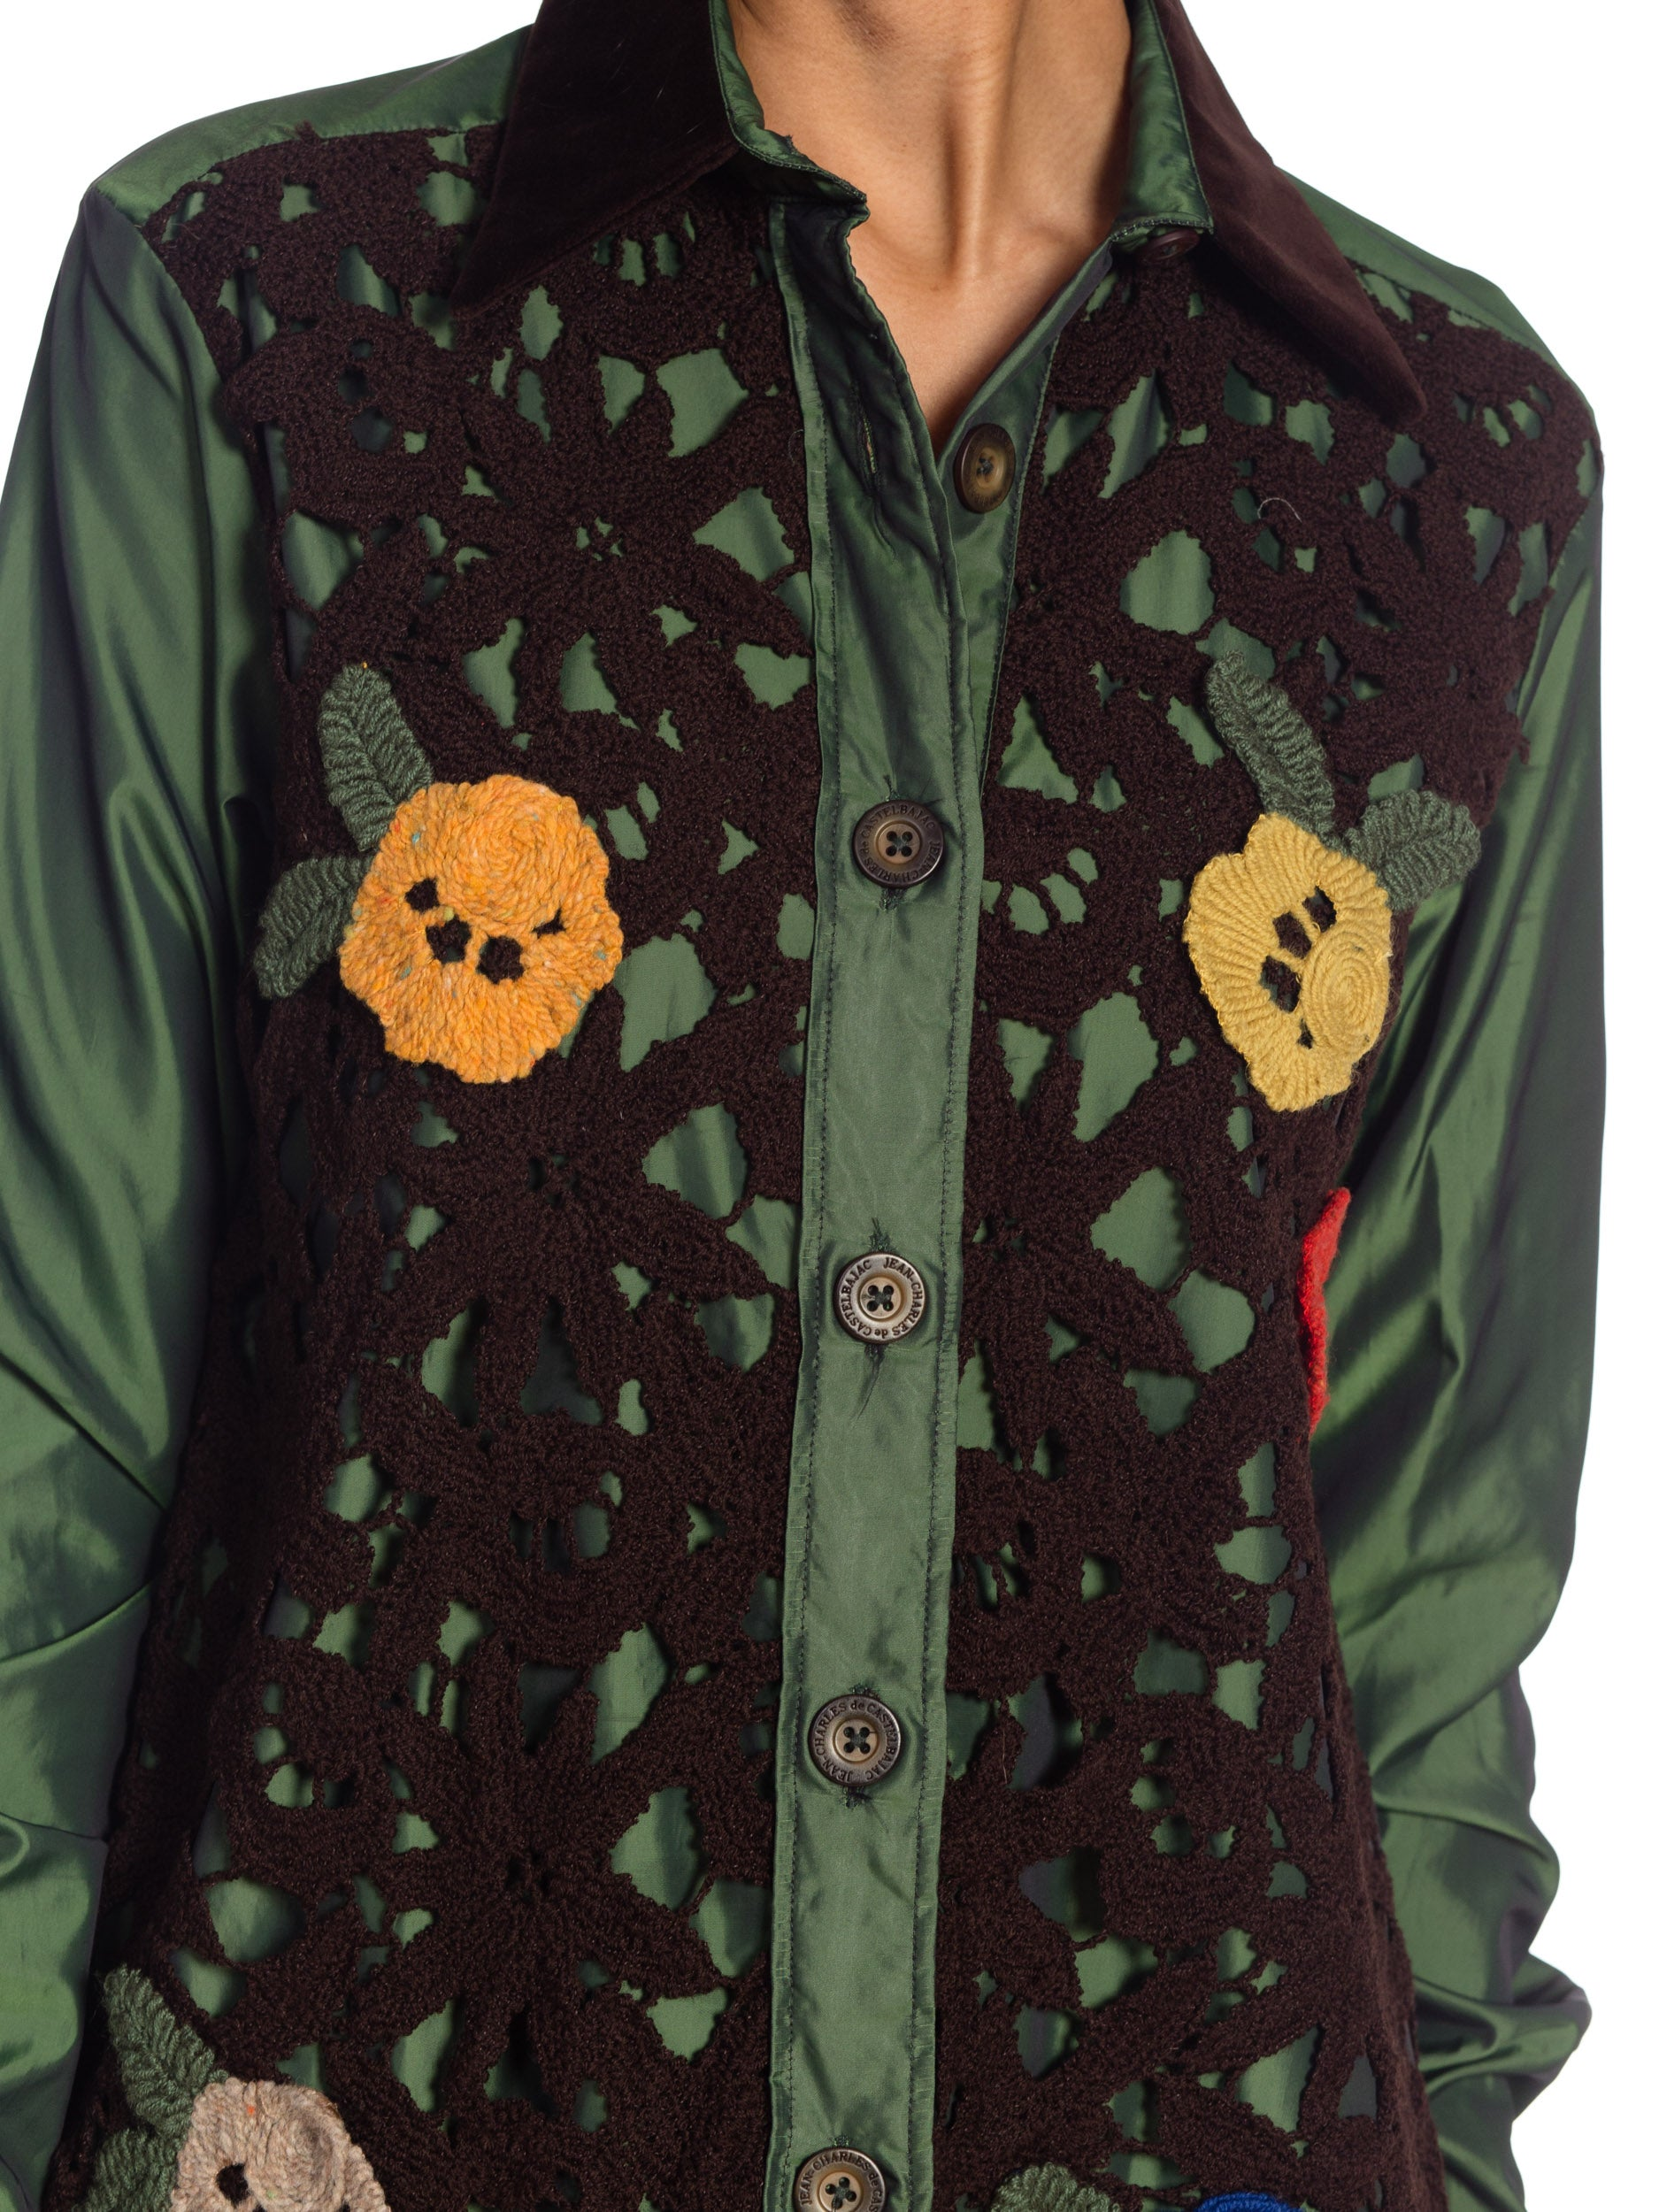 2000S JEAN CHARLES DE CASTELBAJAC Olive Green Nylon Shirt With Floral Crochet Front